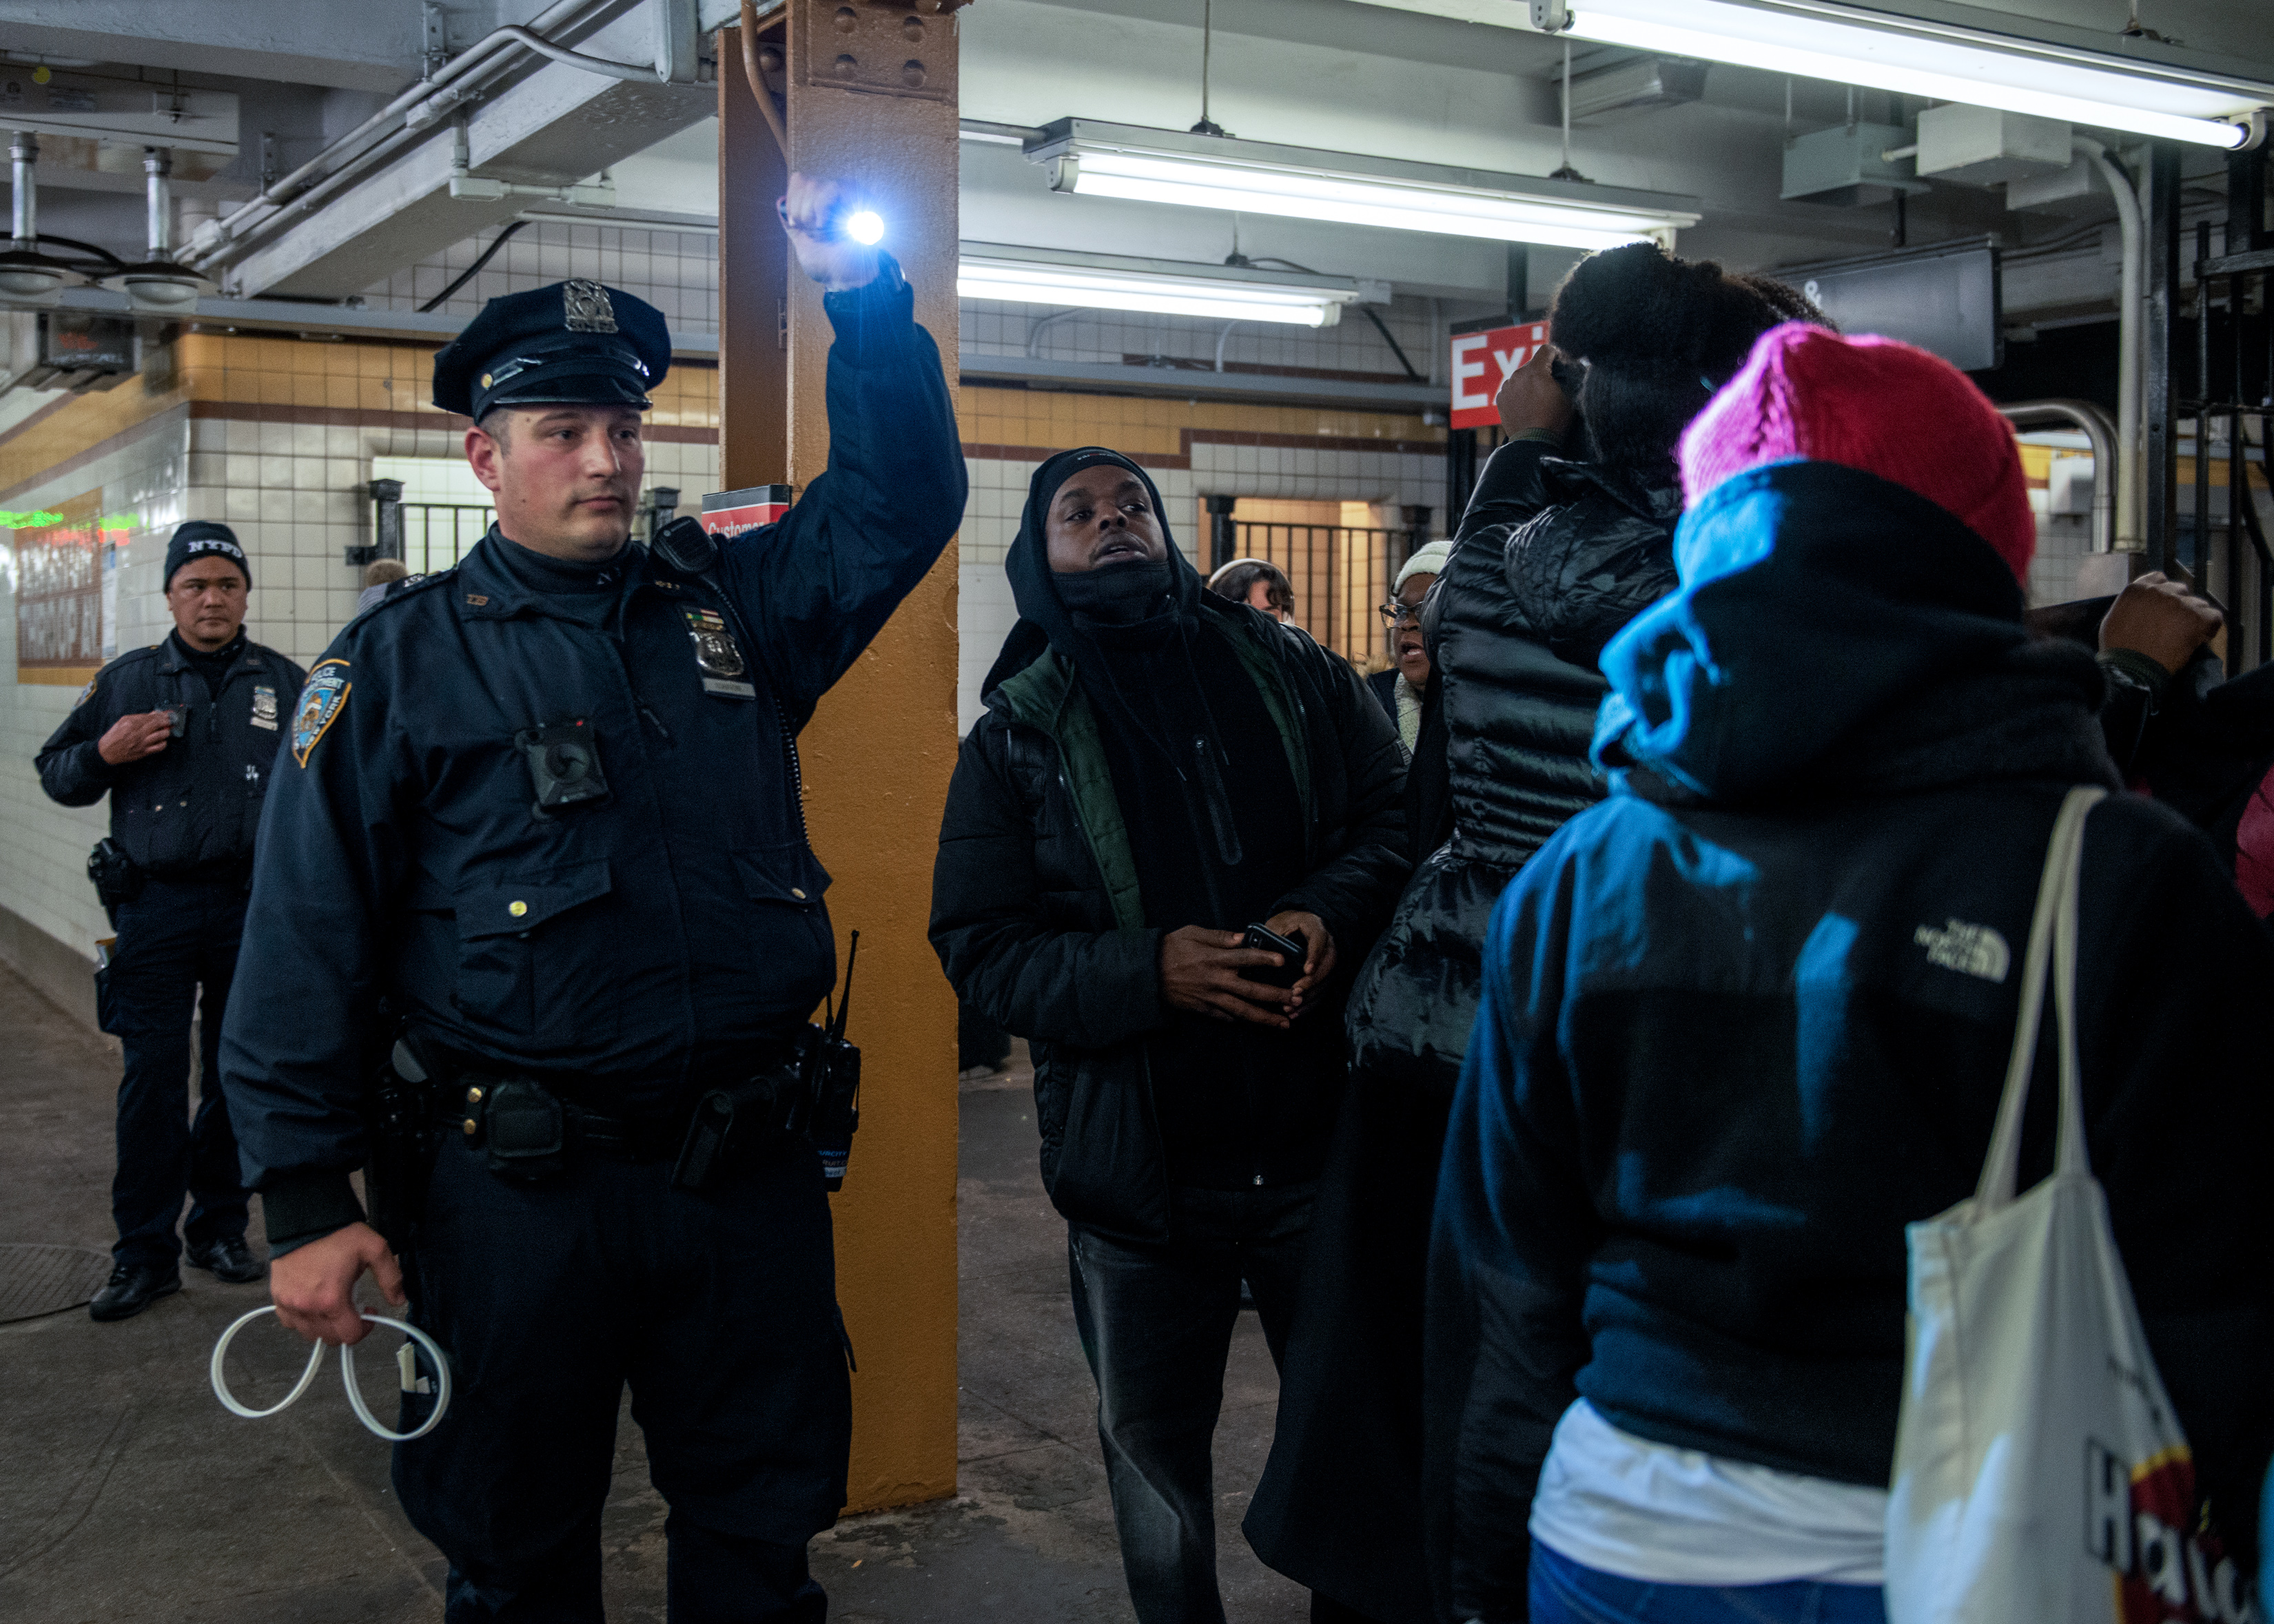 A police officer shines a flashlight on protesters as they exit the subway on January 31, 2020. The protest was in response to increased police presence in New York City subways. Police claim that they need to step up their fare evasion enforcement, and that fare evaders cost the transit agency $240 million a year. Activists, however, see the additional police presence as a war on poor people. (Photo by Aidan Loughran/NurPhoto via Getty Images)